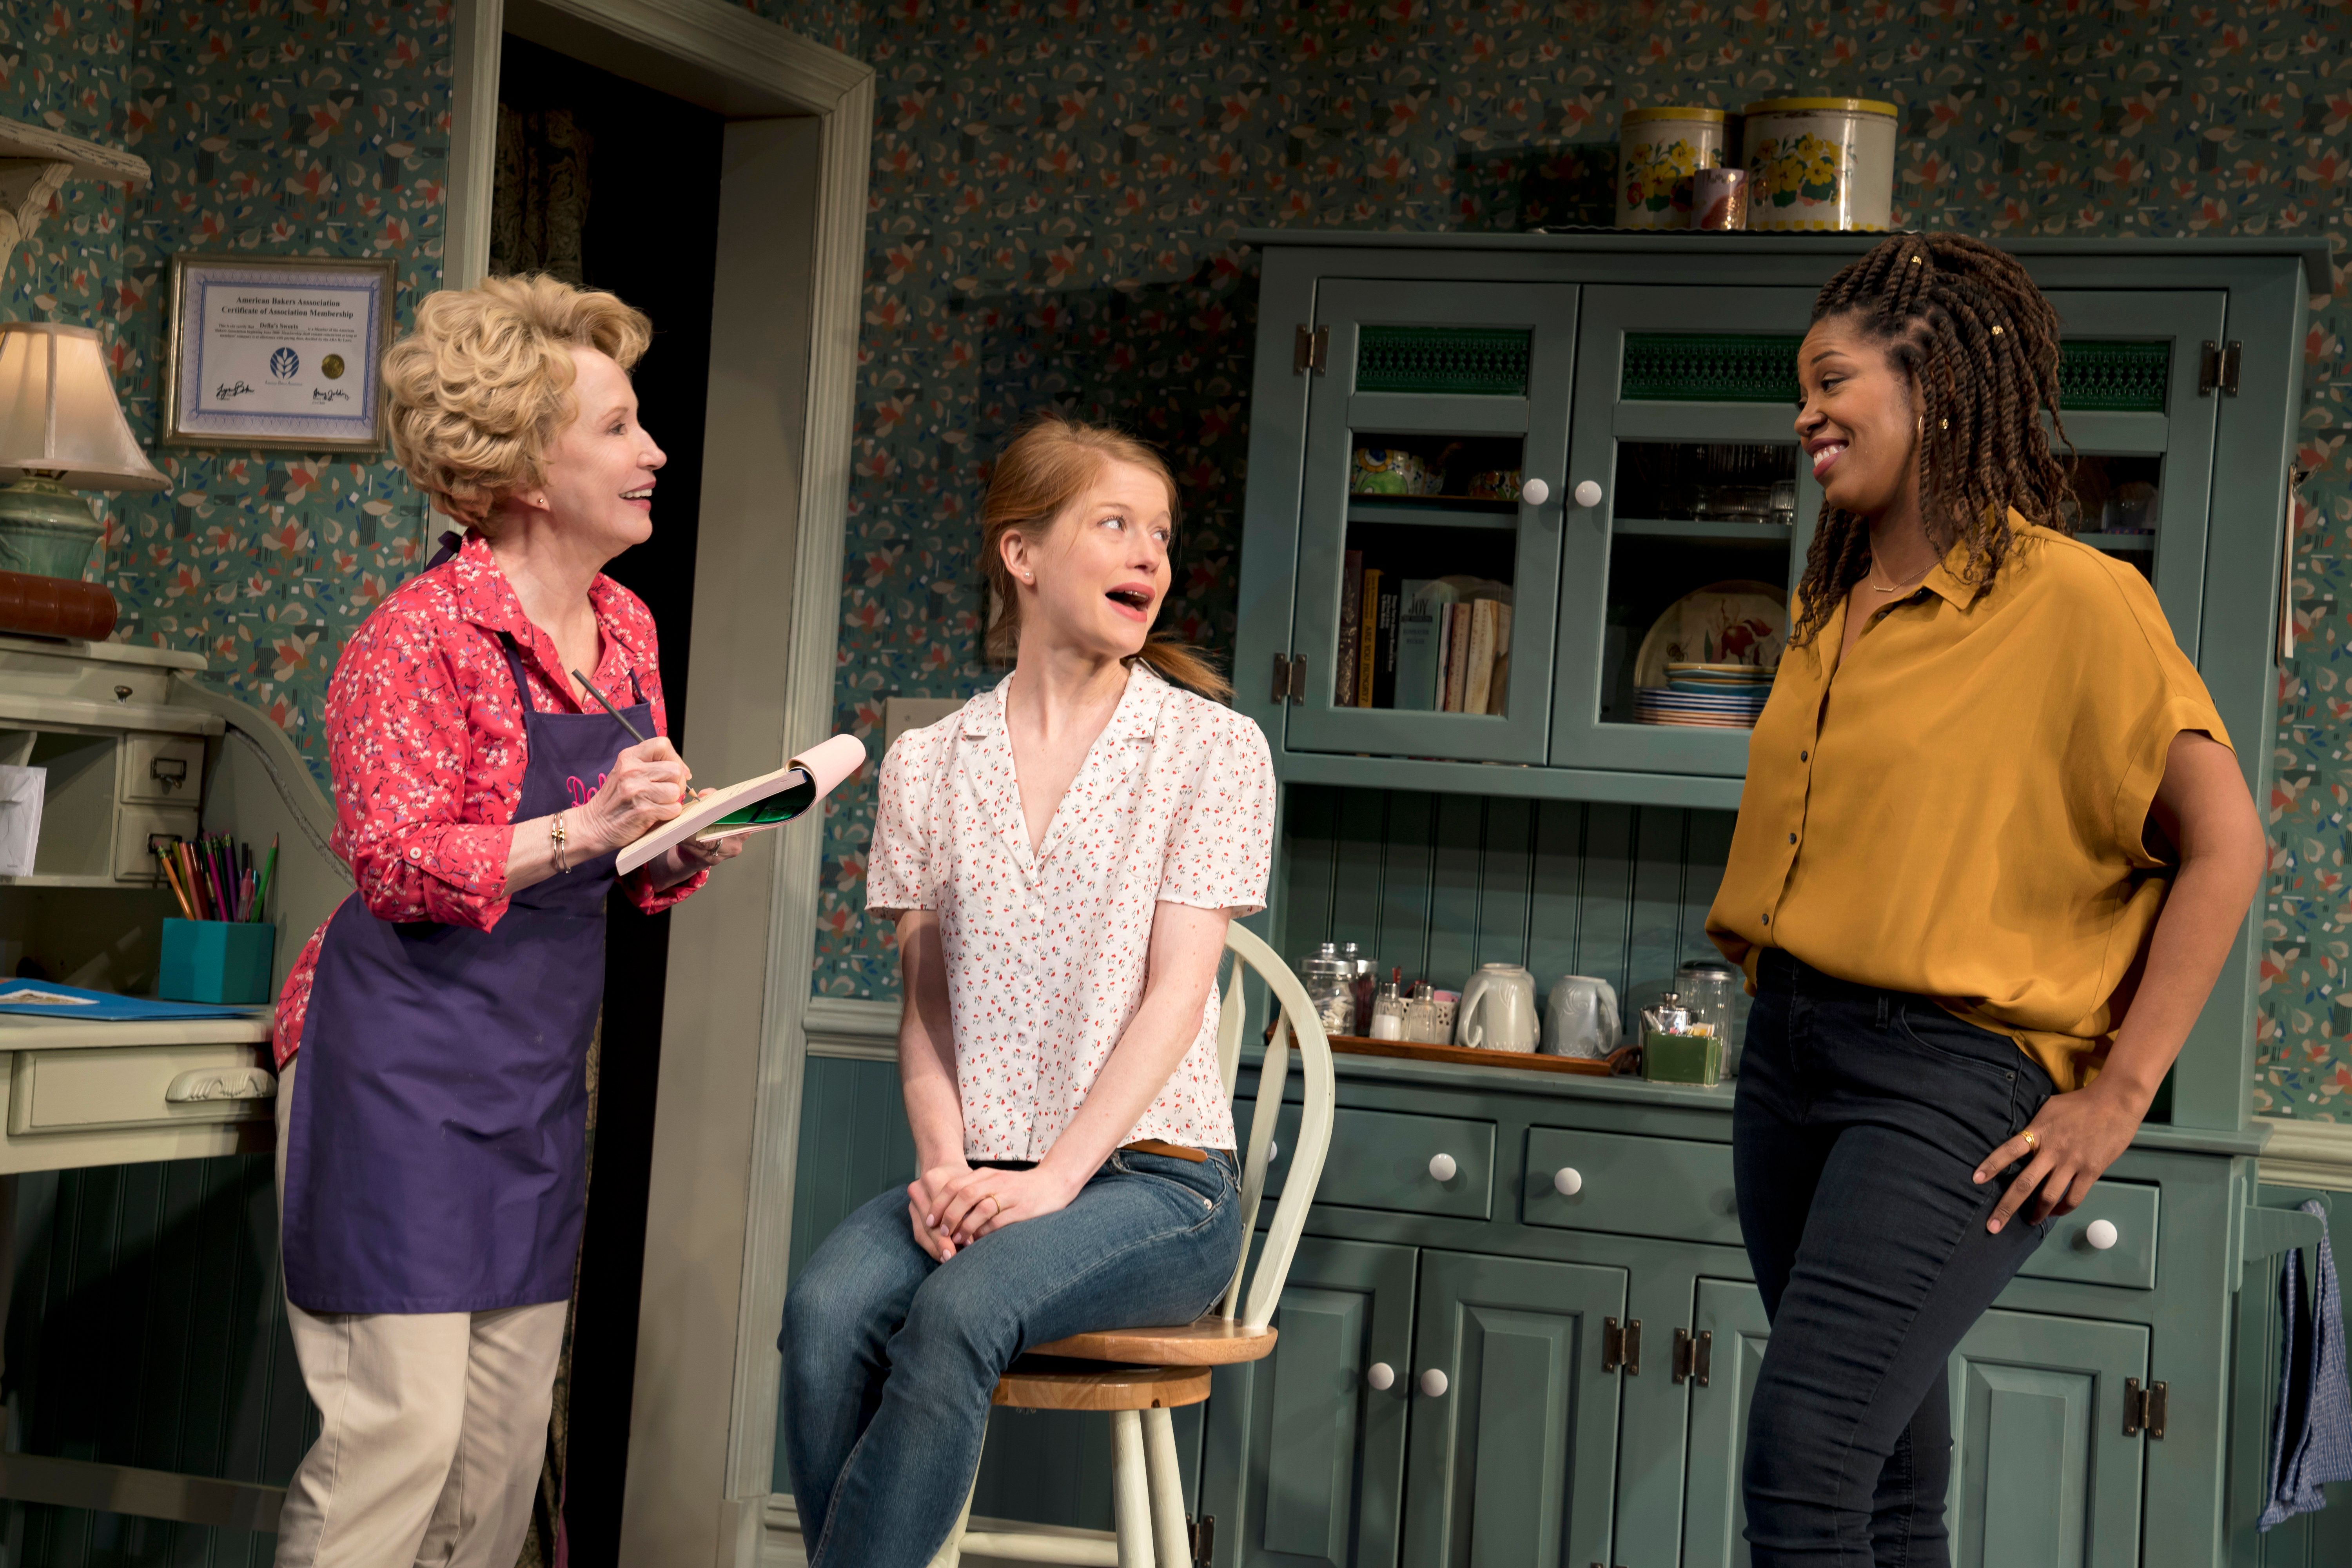 """Debra Jo Rupp (left) told HuffPost she believes """"The Cake"""" has affected audience members on both sides of the rel"""